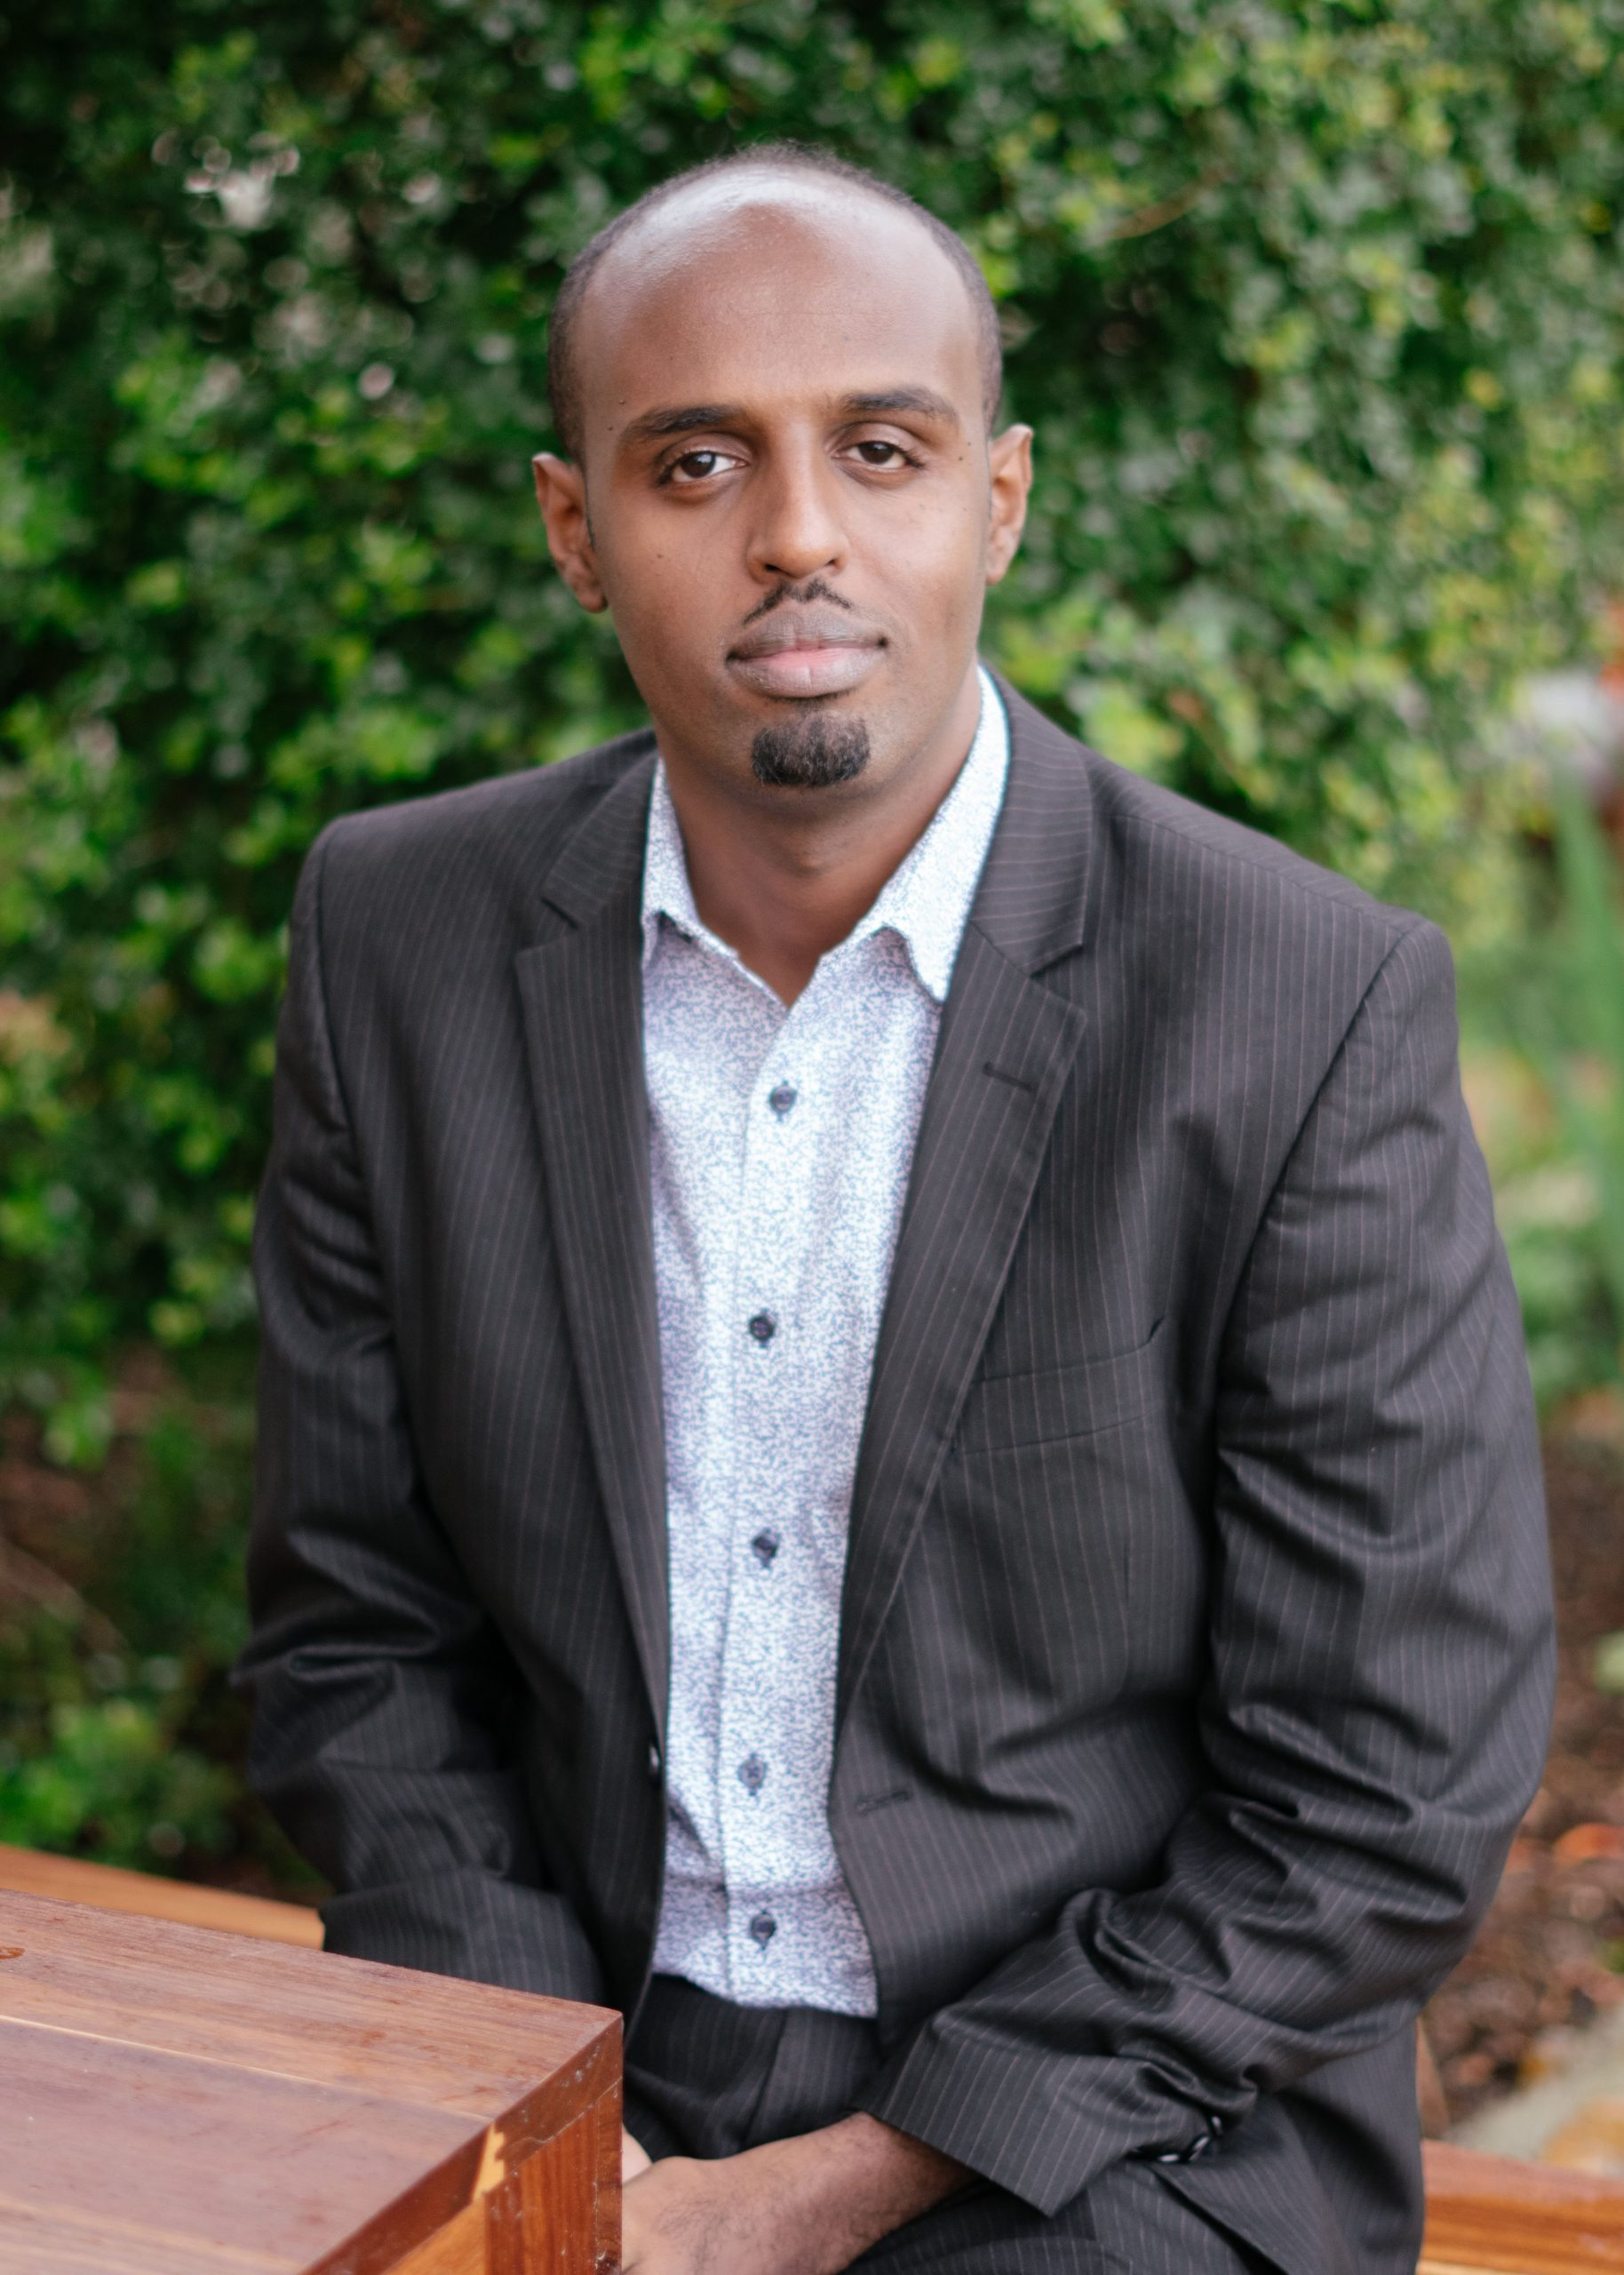 Founder at Human Rights Center Somaliland